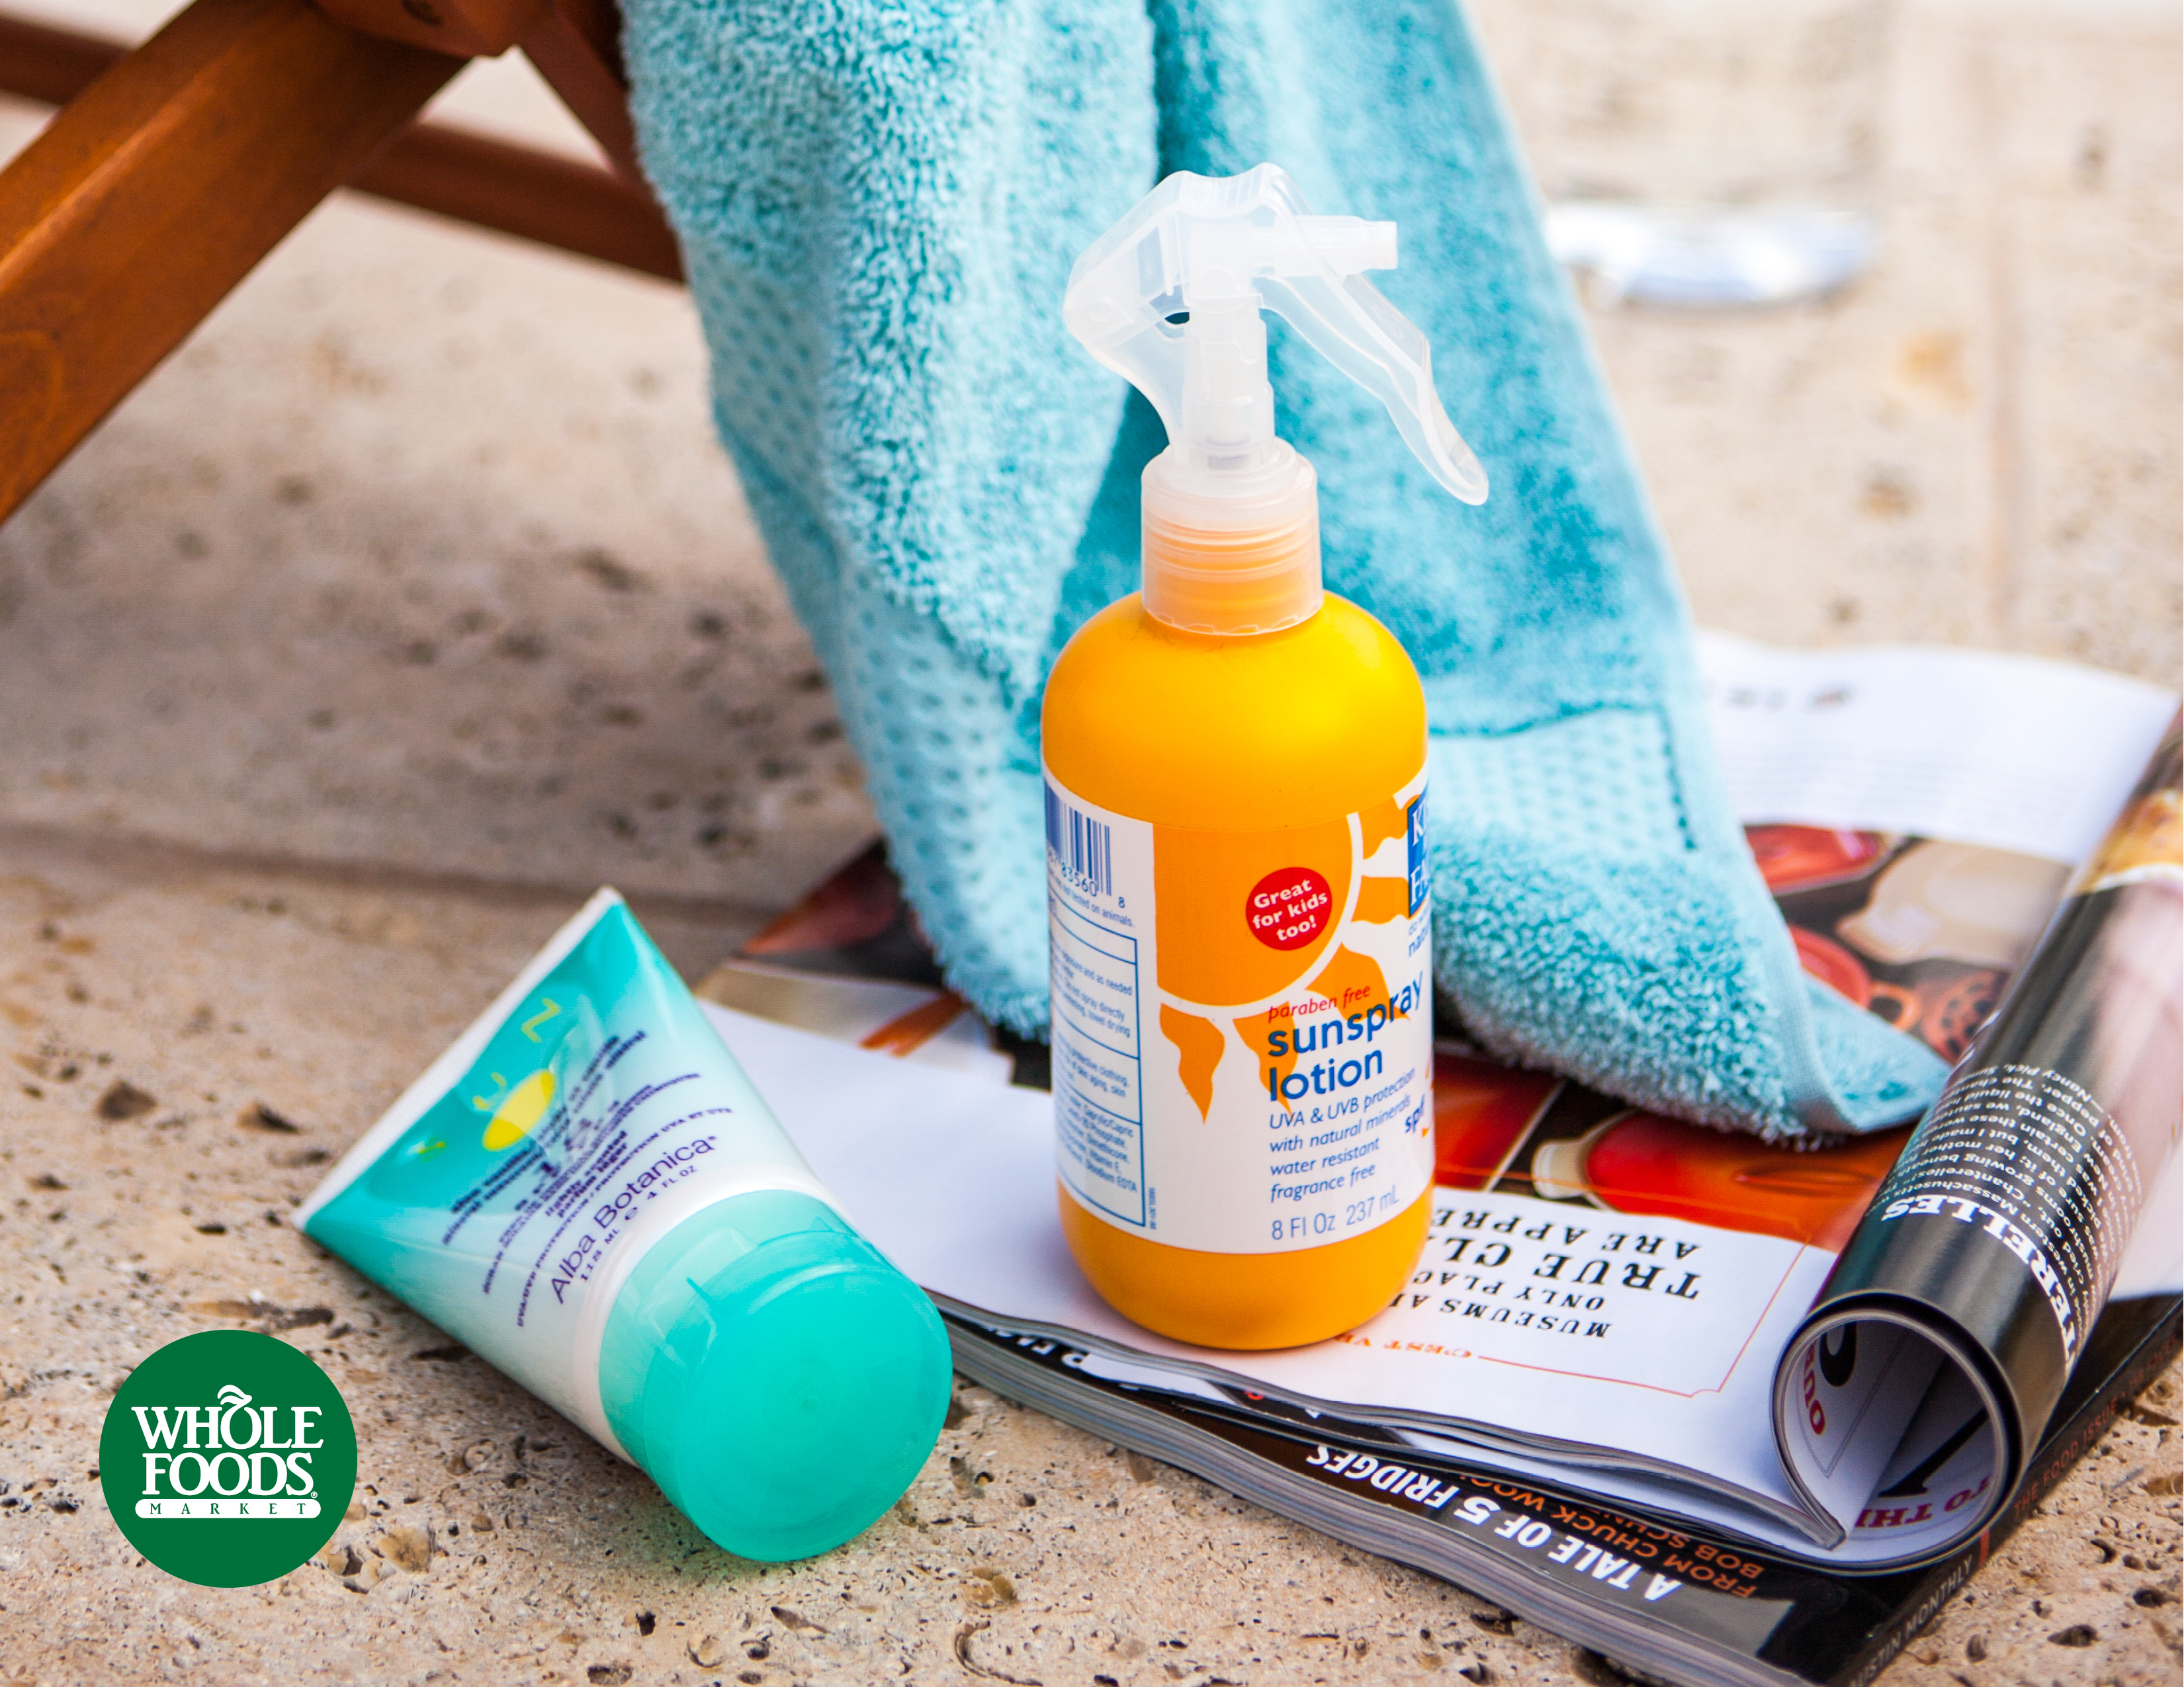 Stock up and save 30 percent on sun care during Memorial Day Weekend at Whole Foods Market (Photo: Business Wire)